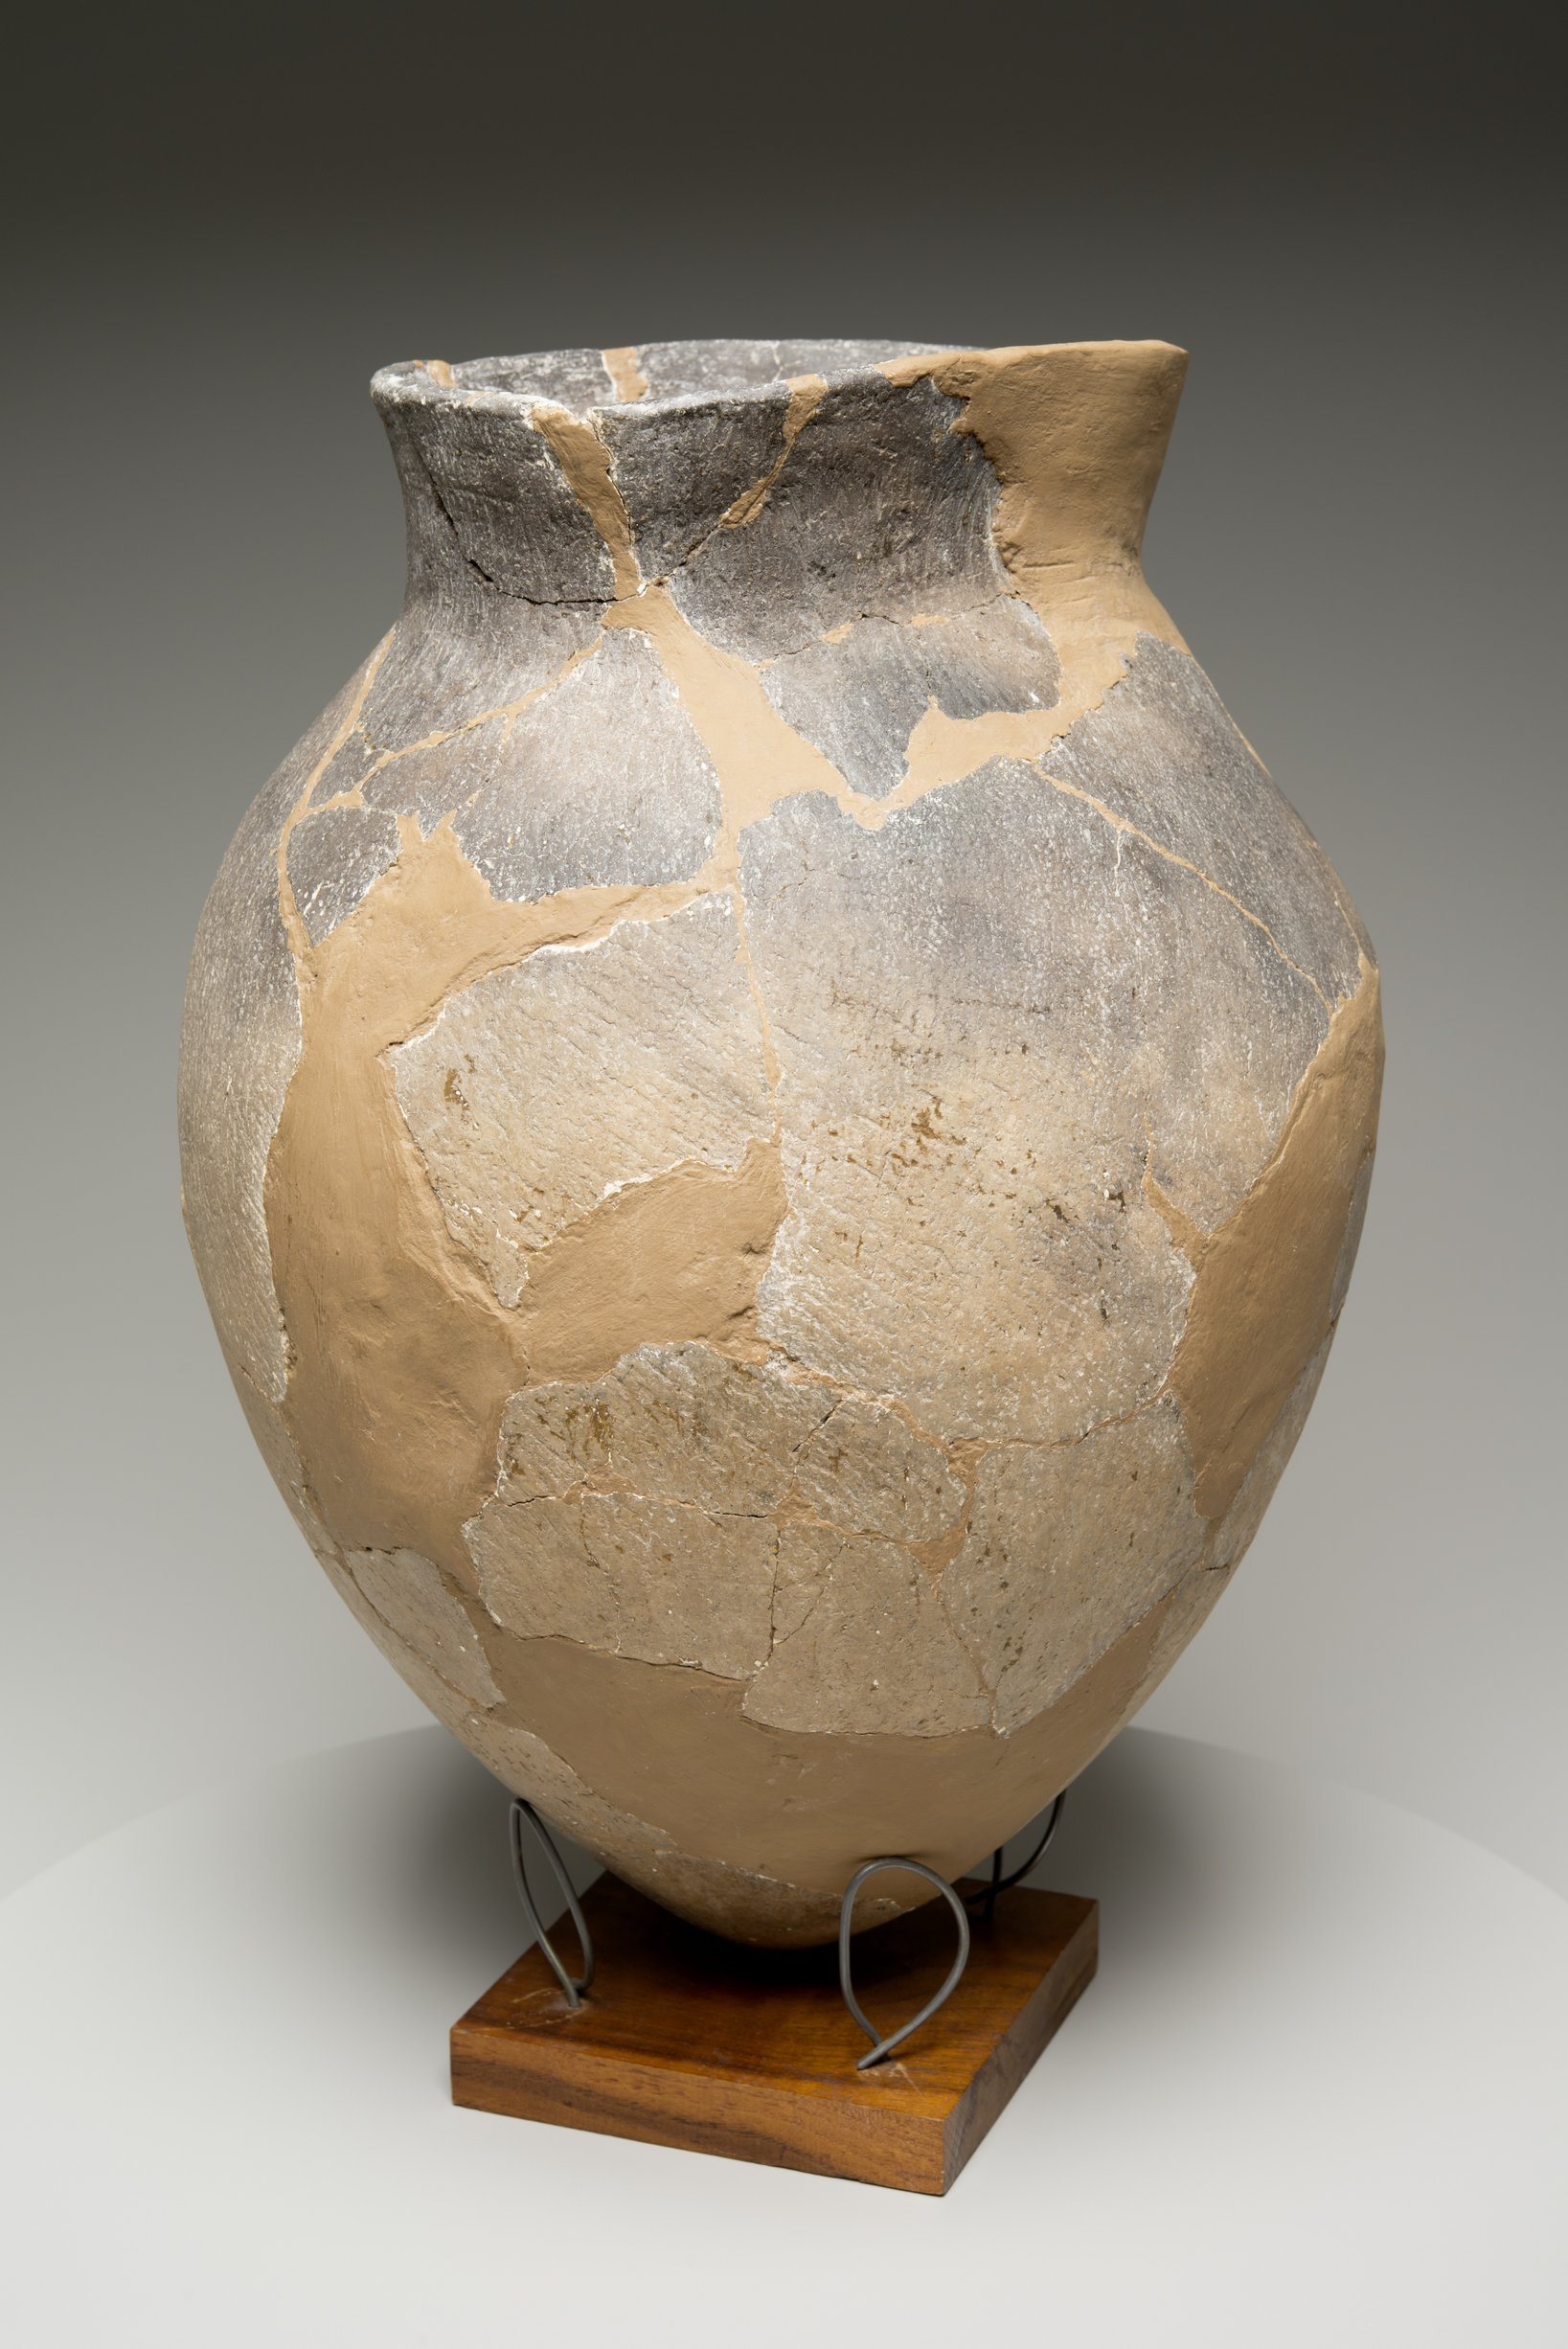 Grasshopper Falls phase Early Ceramic Vessel From the Booth Site, 14JN349 - 12